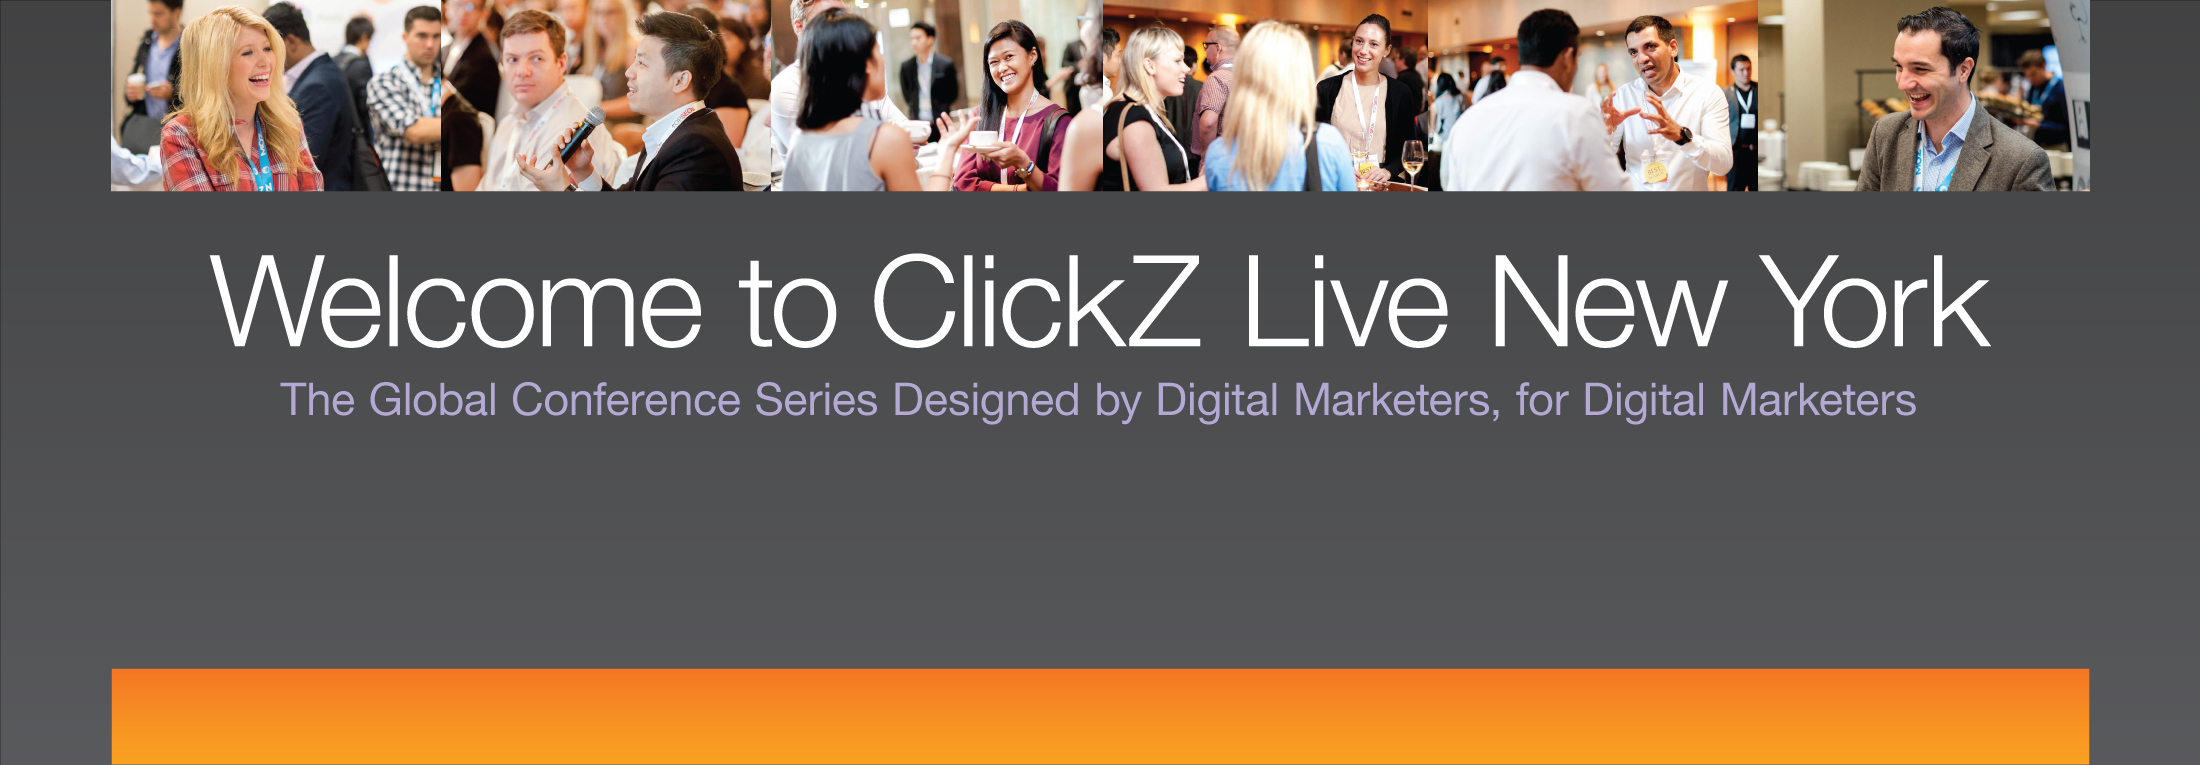 Welcome sign at ClickZ conference.